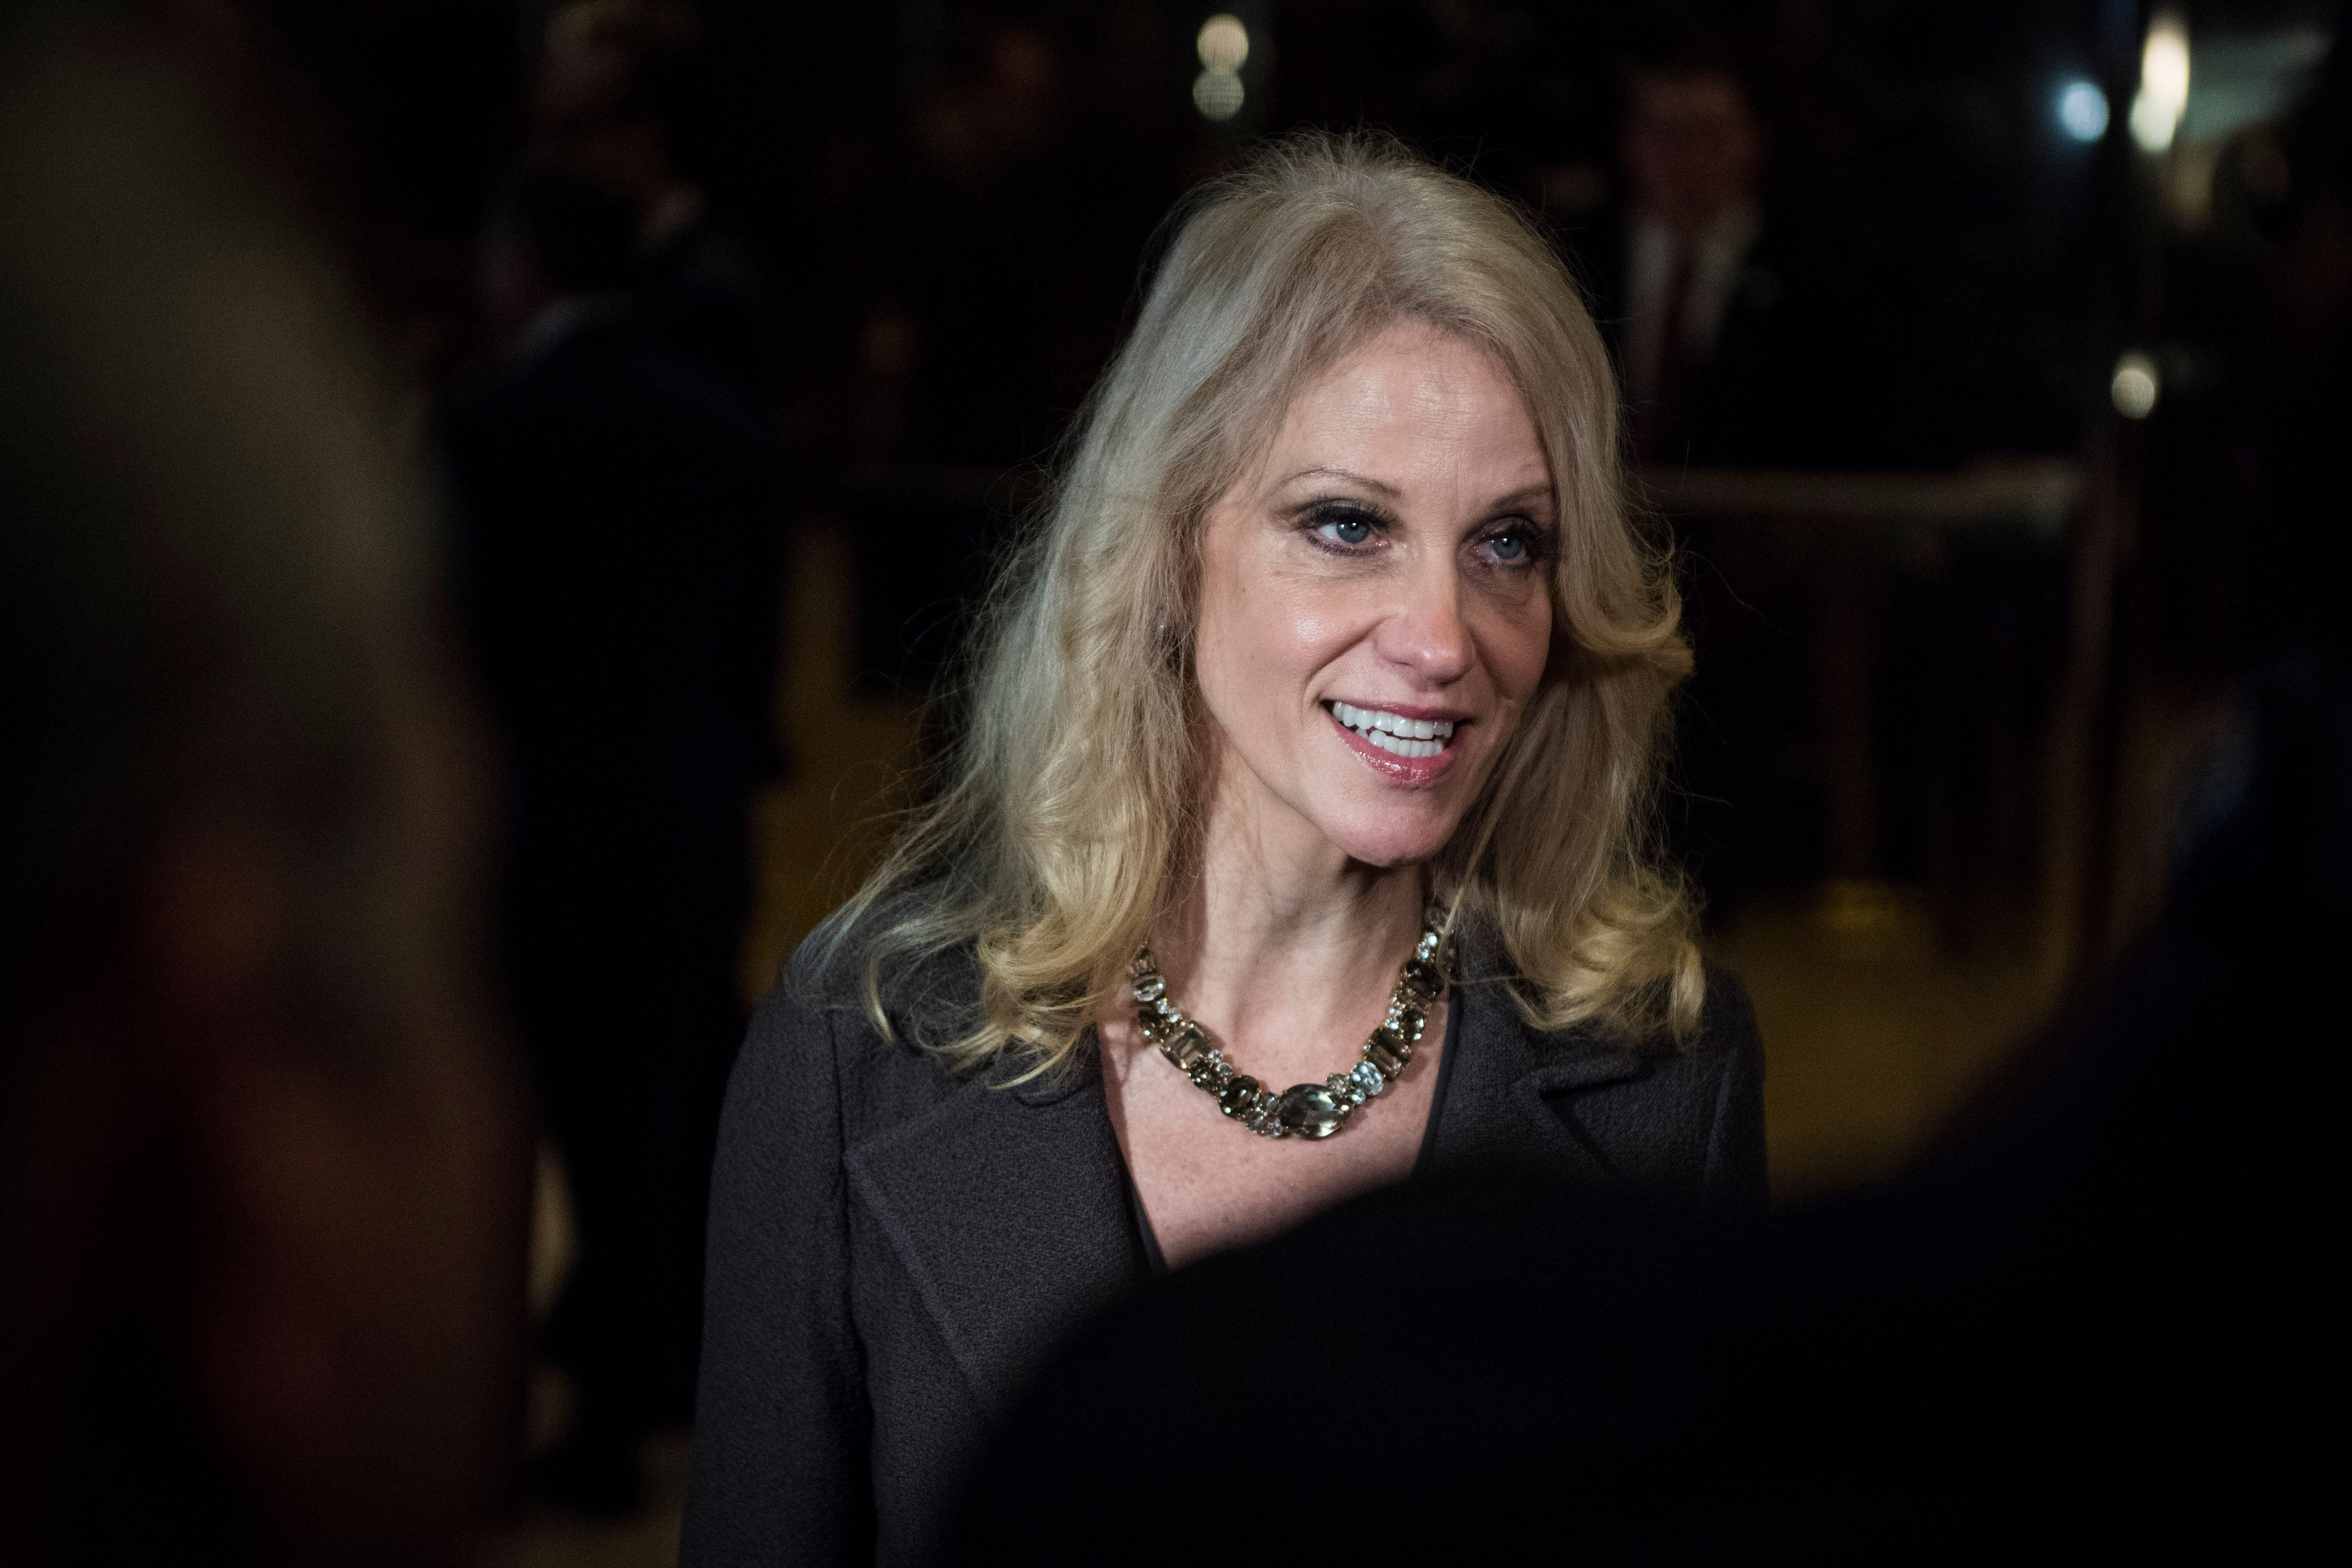 Kellyanne Conway, Donald Trump's campaign manager and top aide, speaks to media on Nov. 16 at Trump Tower in New York.